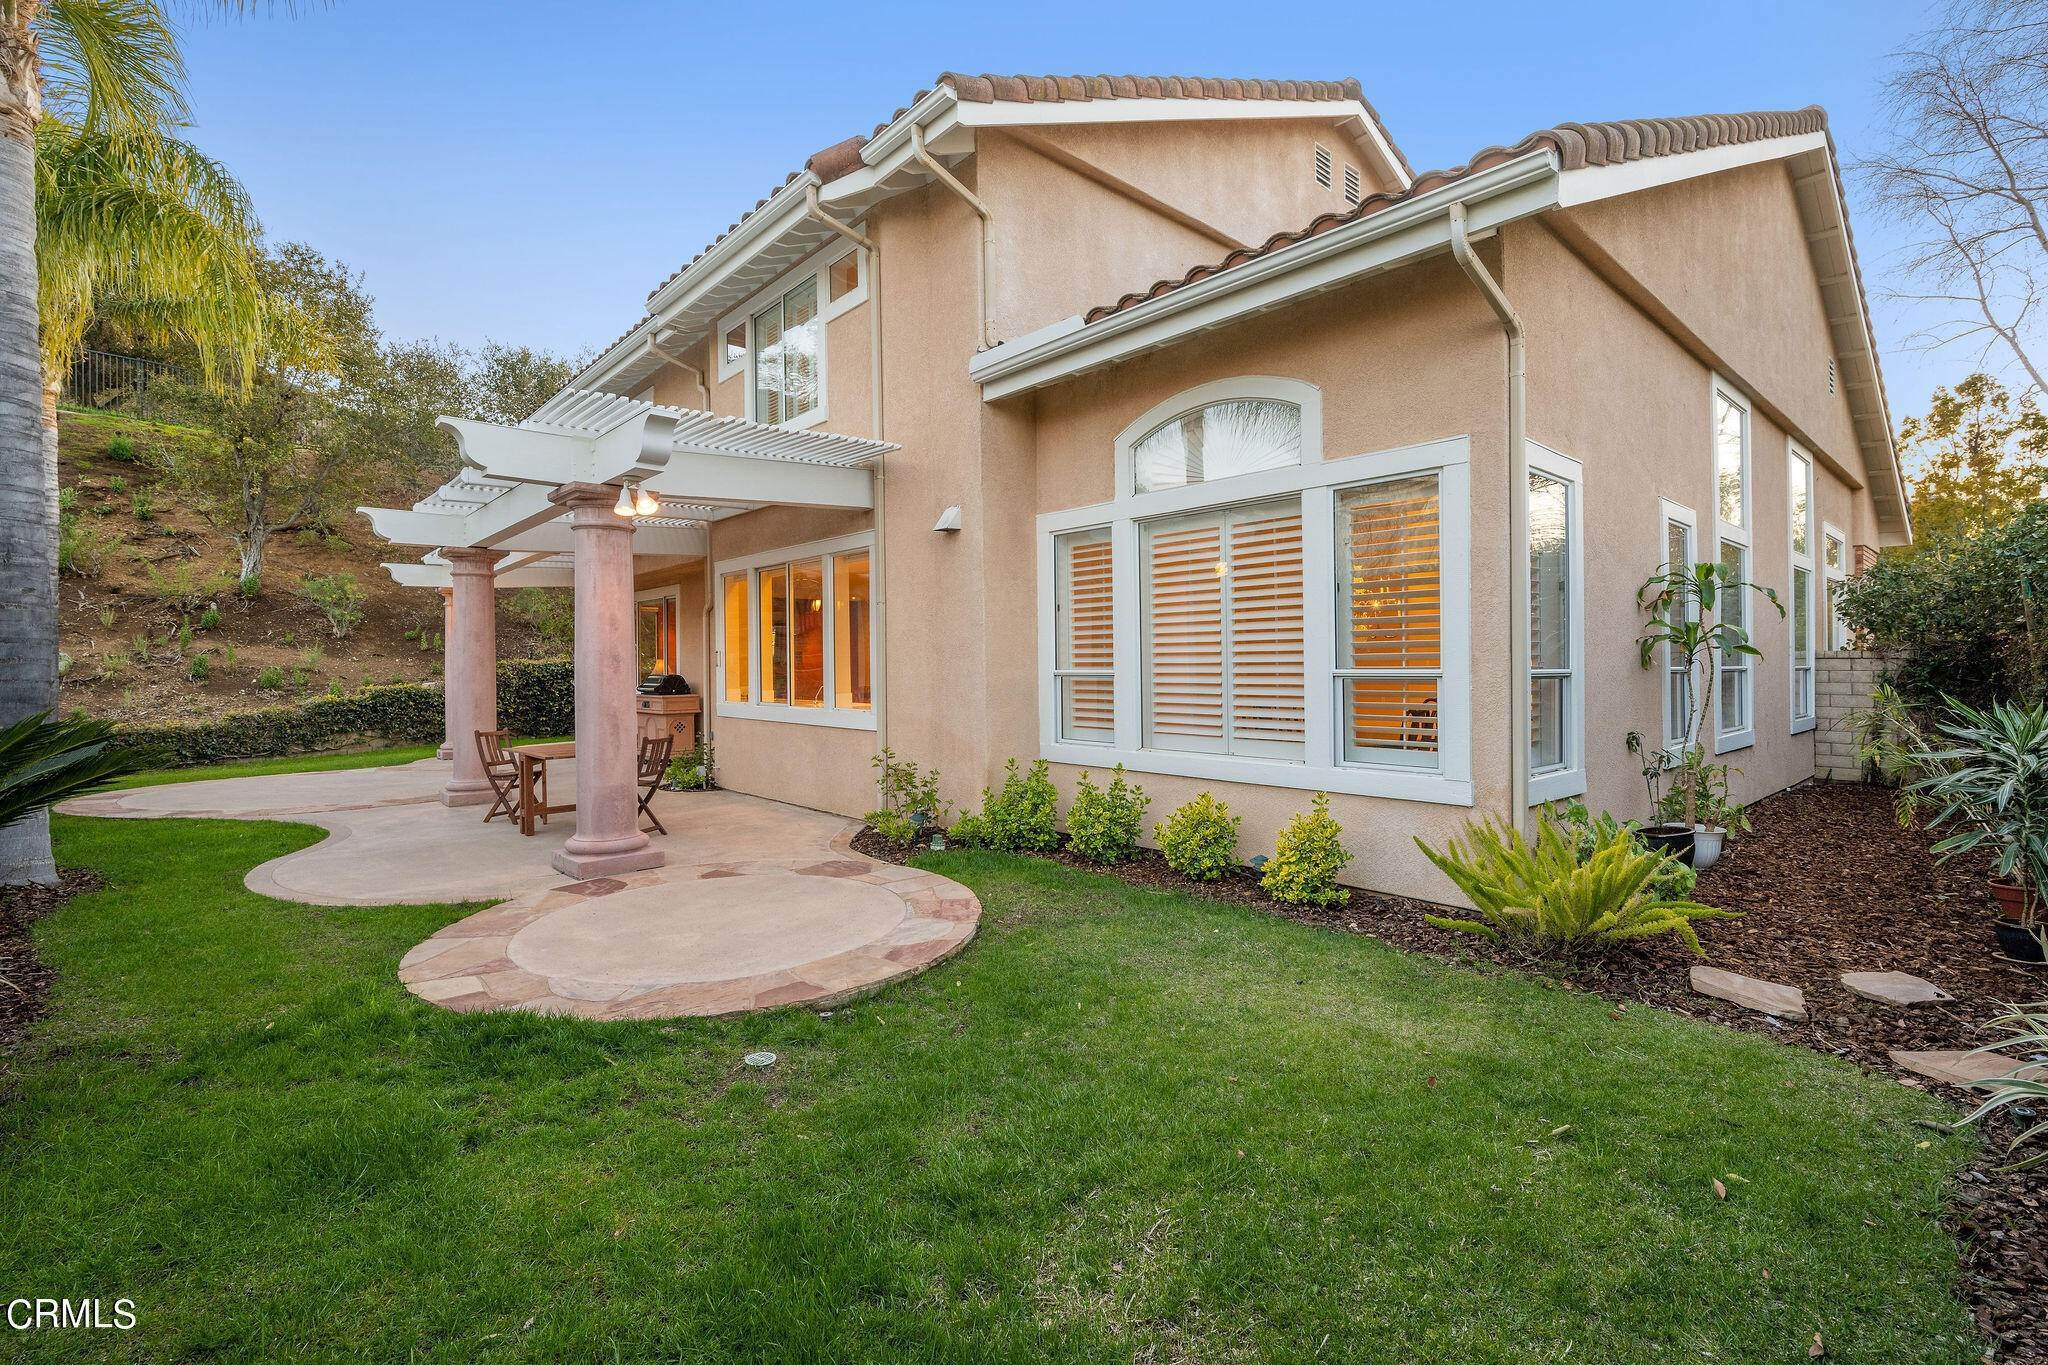 43. Single Family Homes for Sale at 1760 Crystal View Circle Newbury Park, California 91320 United States